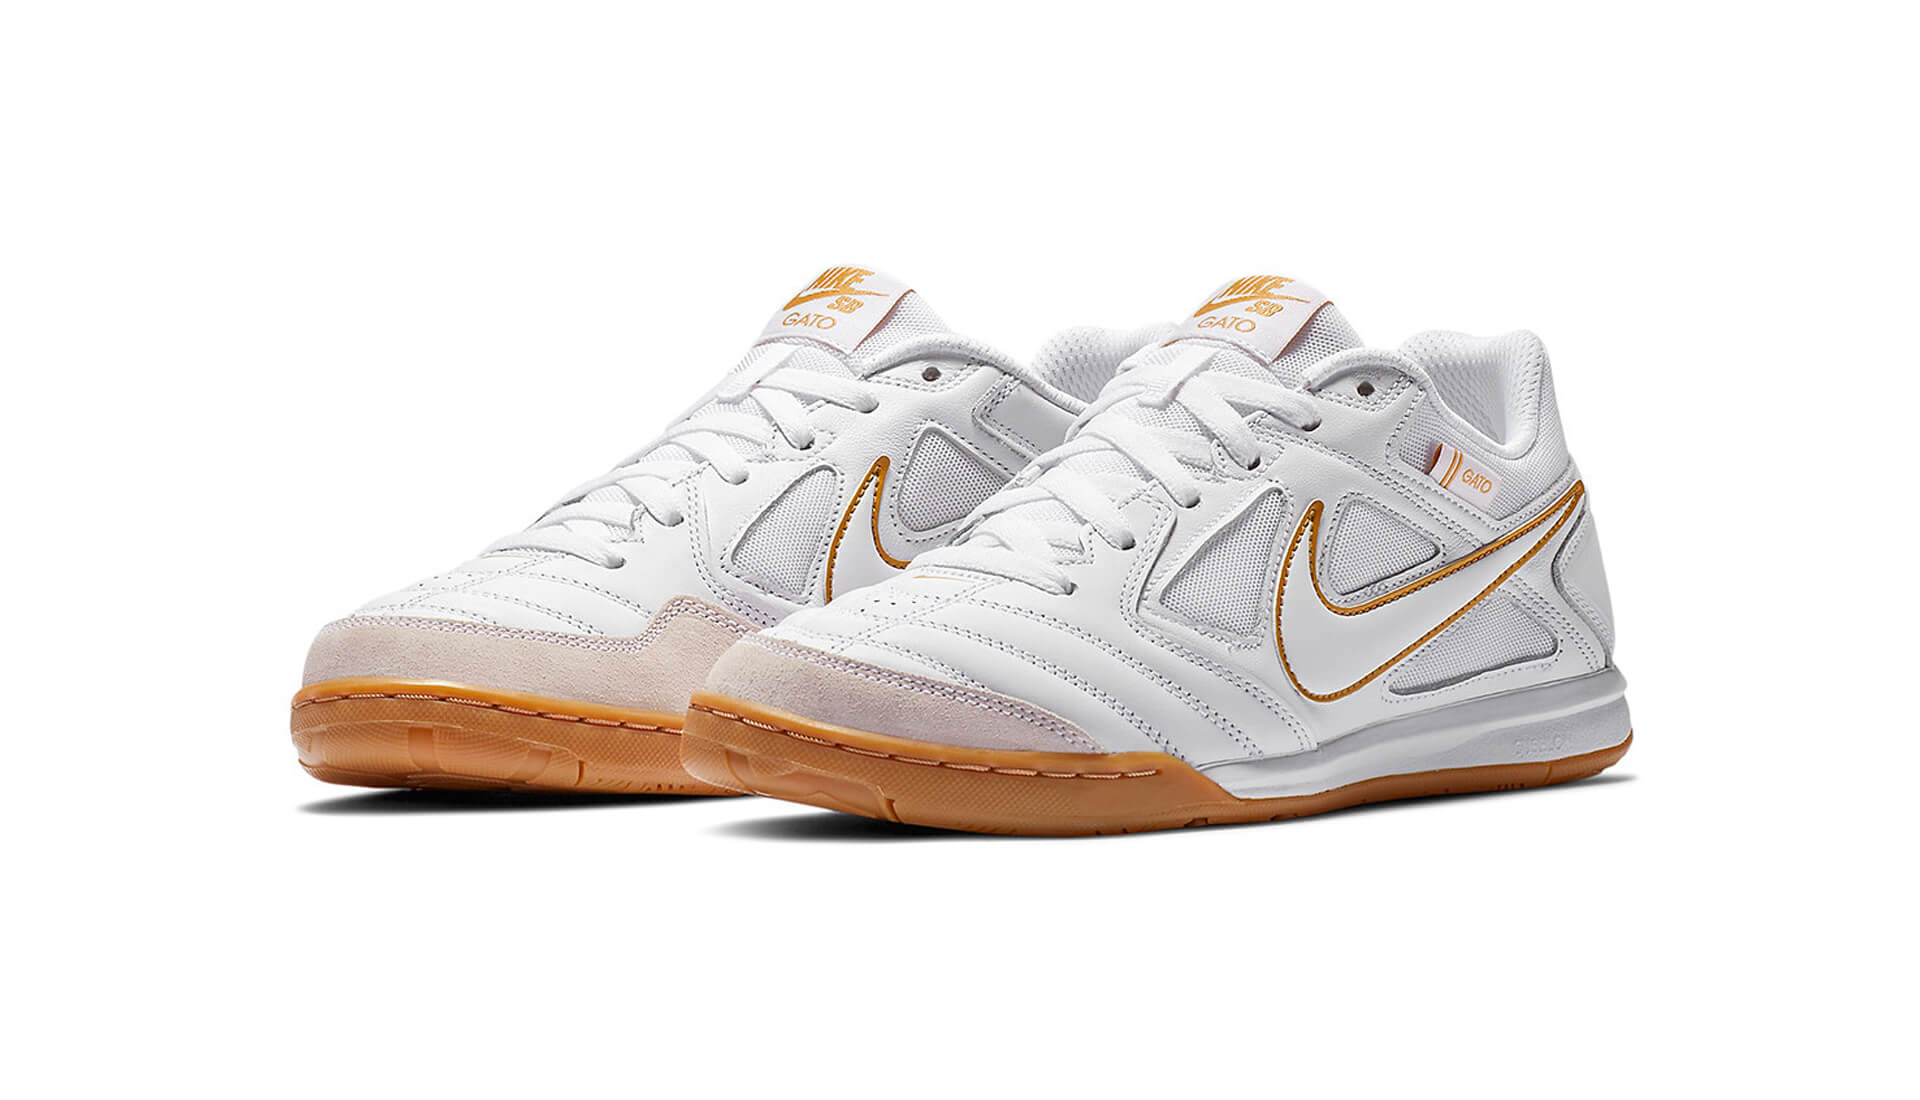 fecb5d8d243 Nike SB Drop Two New Lunar Gato Colourways - SoccerBible